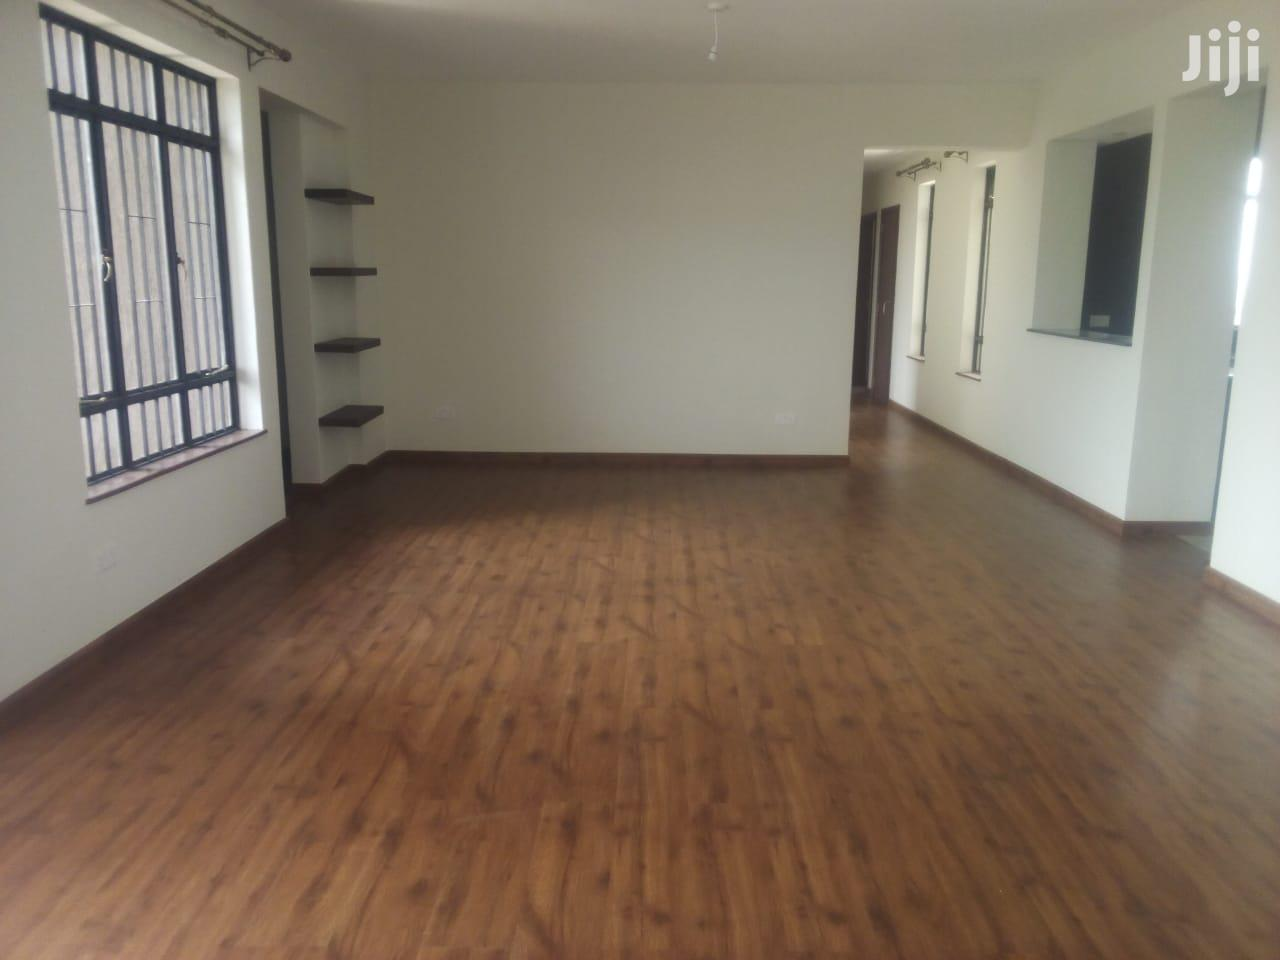 3 Bedrooms And Dsq Penthouse For Sale In Kileleshwa. | Houses & Apartments For Sale for sale in Kileleshwa, Nairobi, Kenya